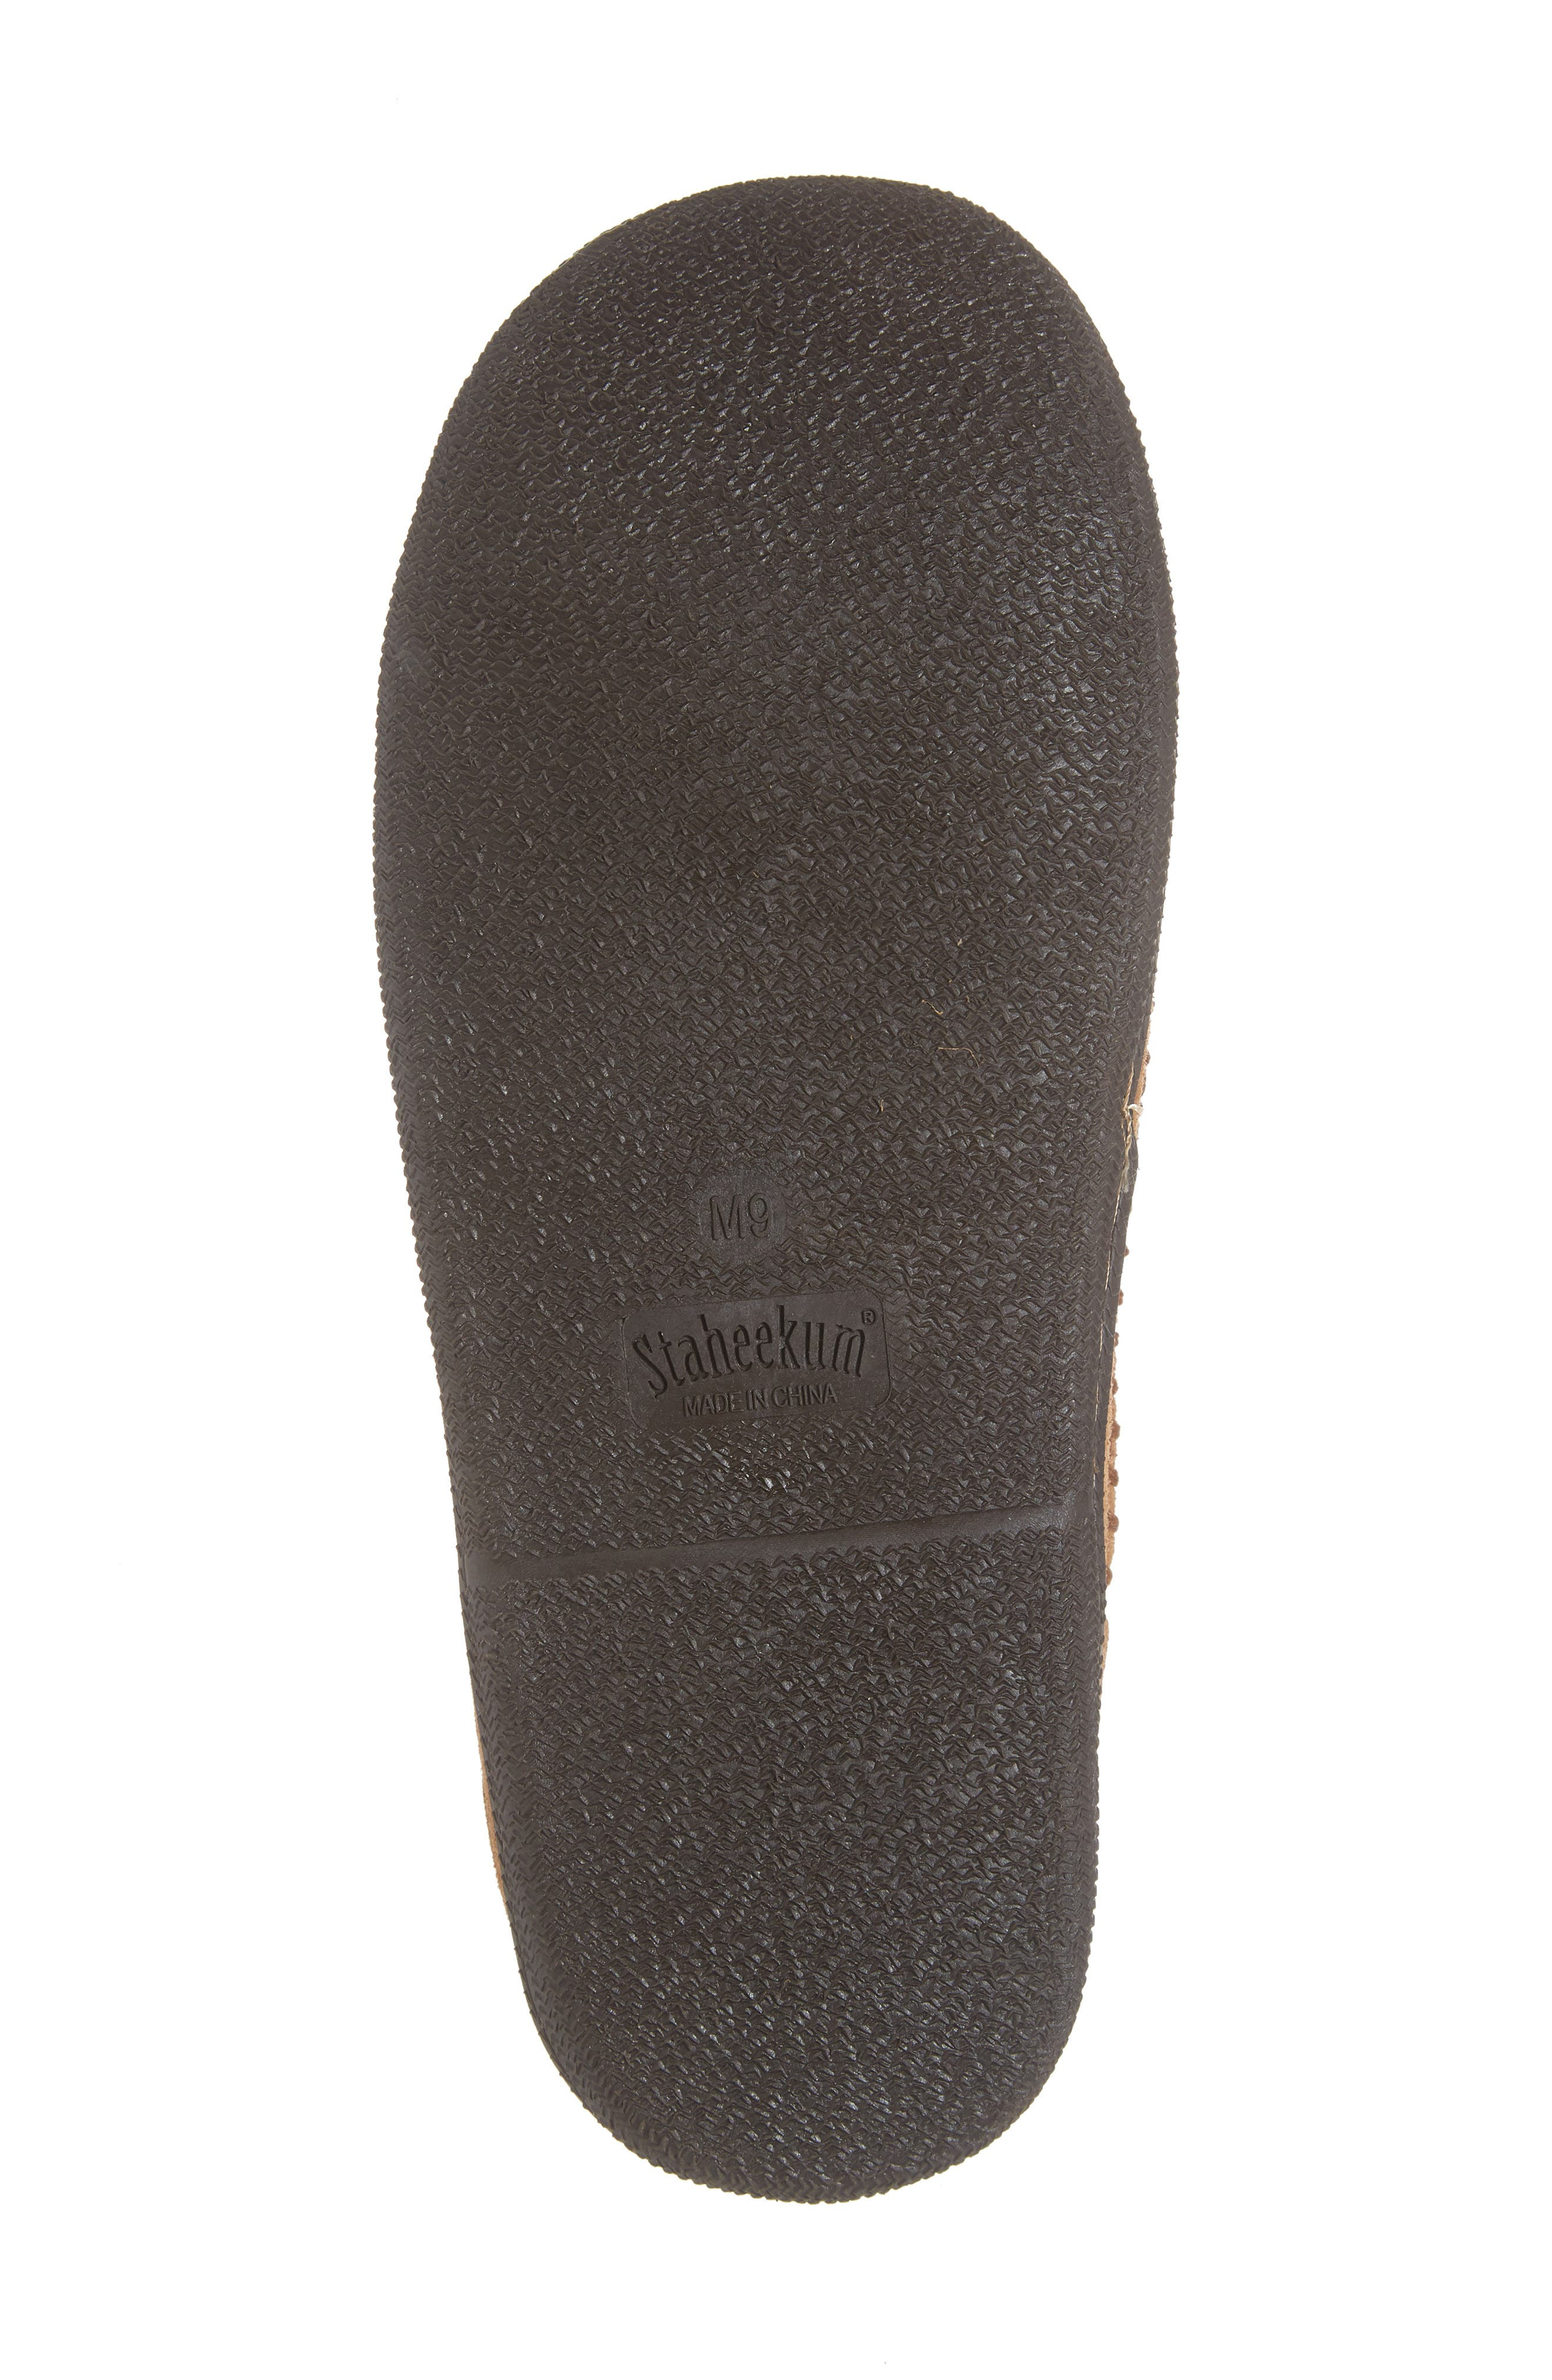 Cypress Flannel Lined Slipper,                             Alternate thumbnail 6, color,                             212